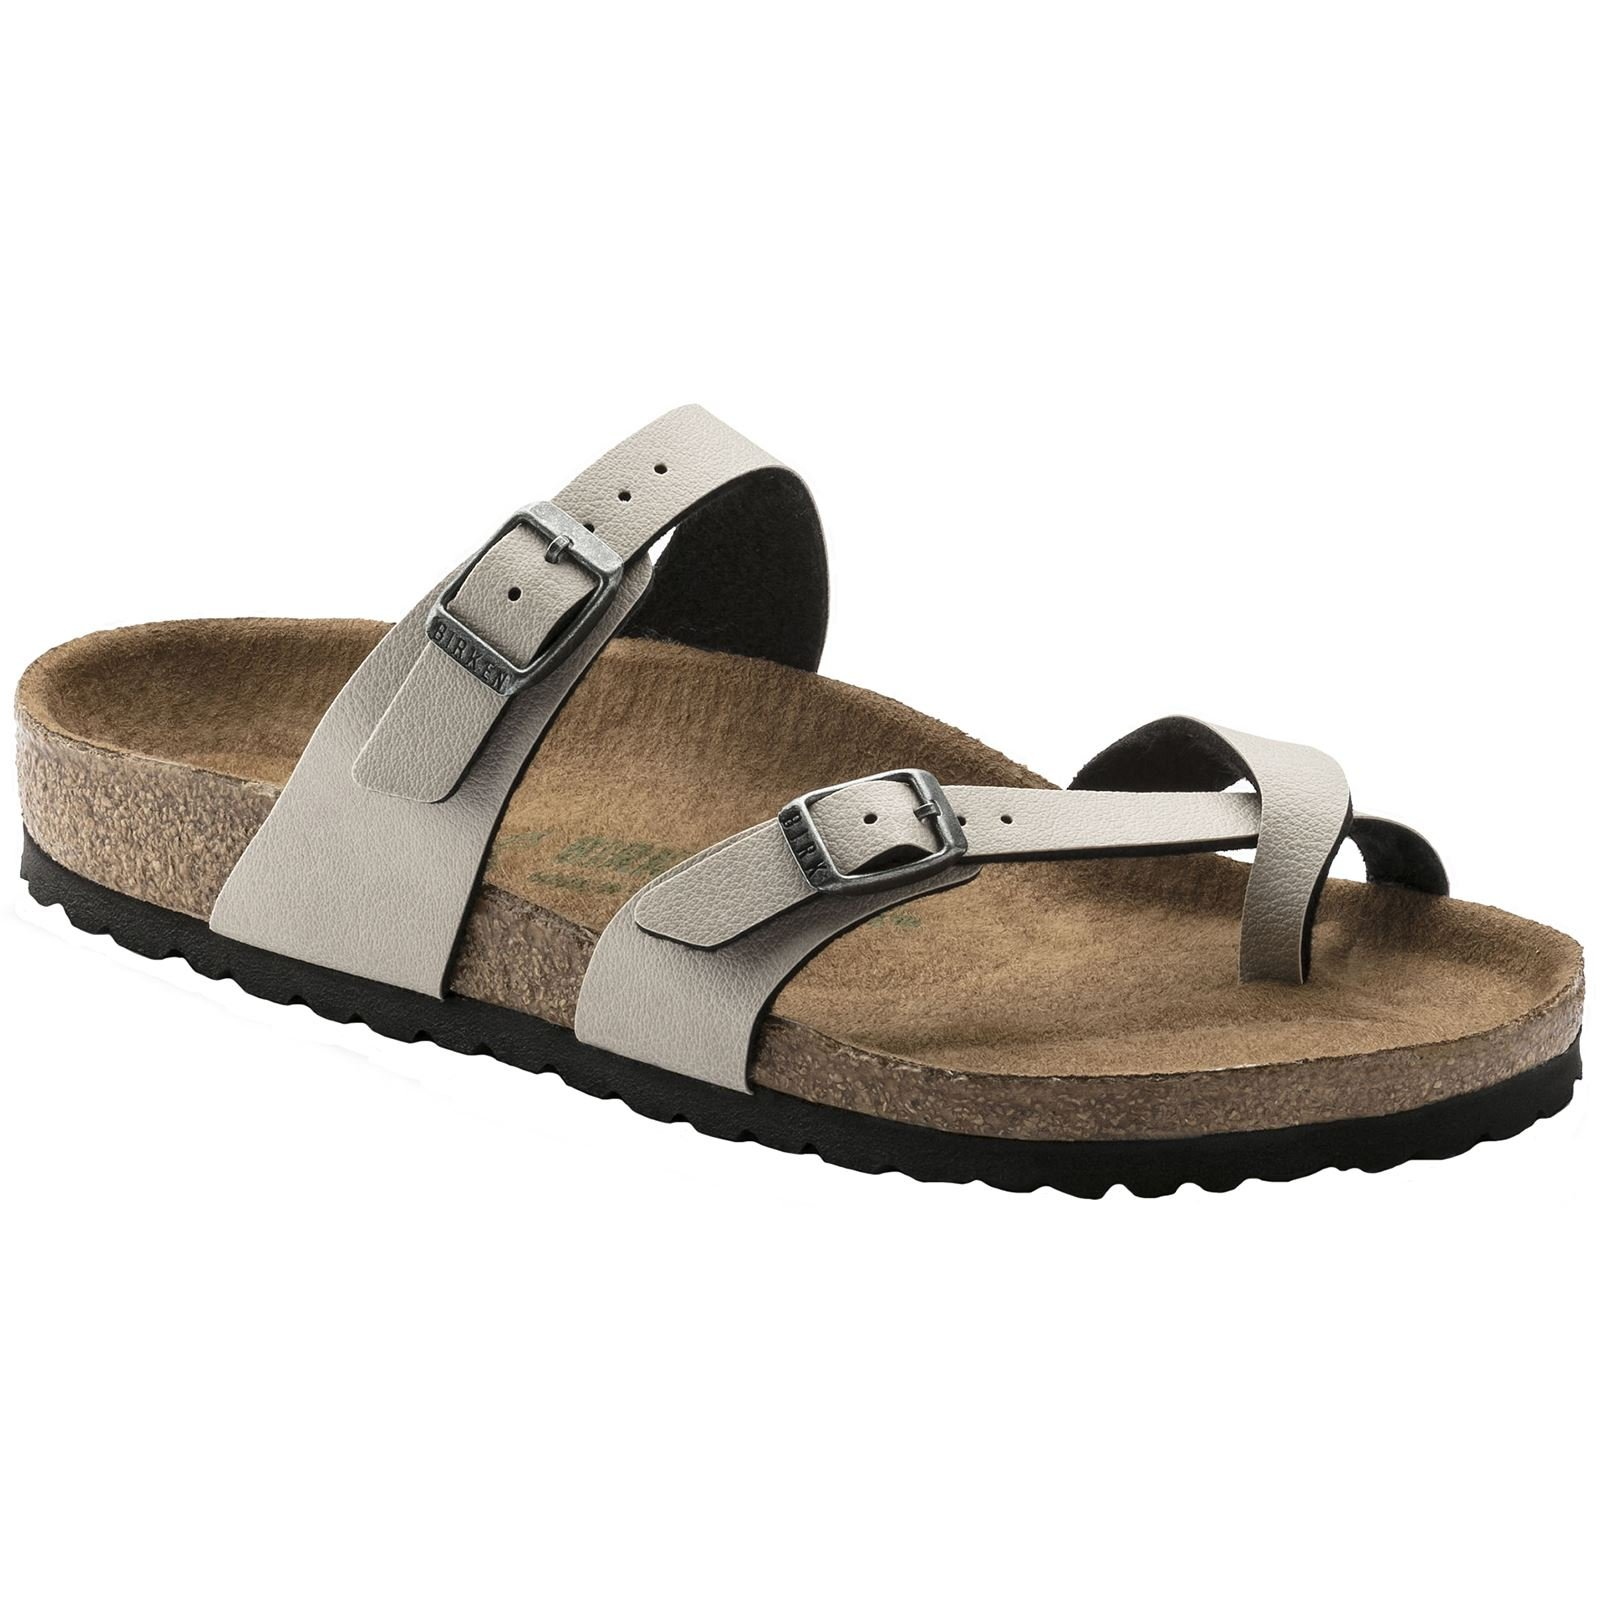 cfe73545c17 Galleon - Birkenstock New Women s Mayari Vegan Sandal Pull Up Stone 39 R